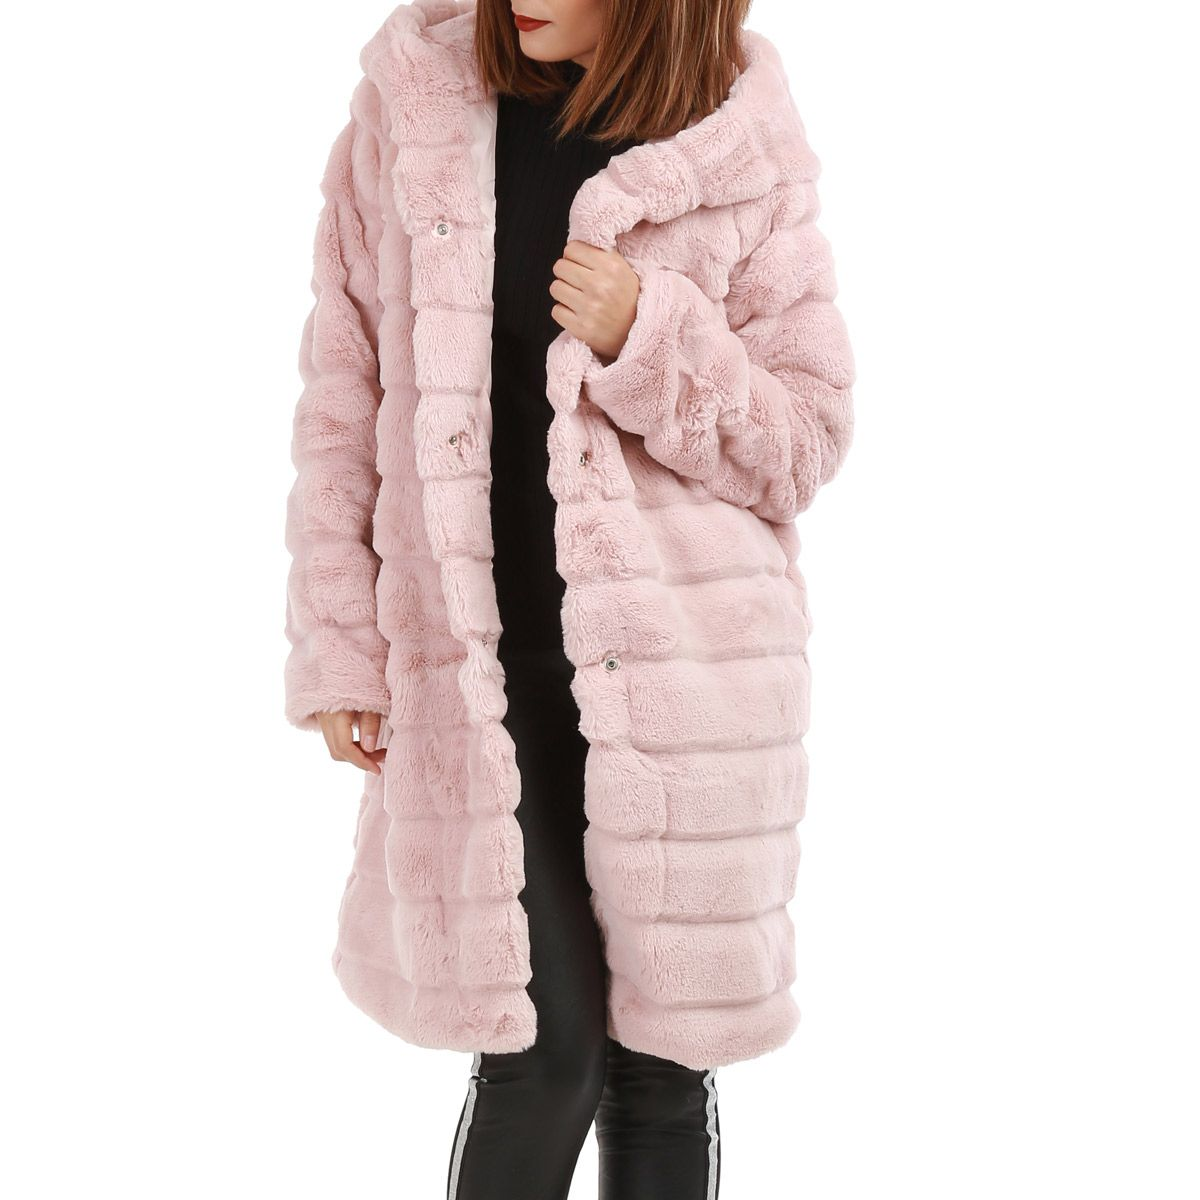 manteau long rose capuche en fausse fourrure femme pas cher la modeuse. Black Bedroom Furniture Sets. Home Design Ideas